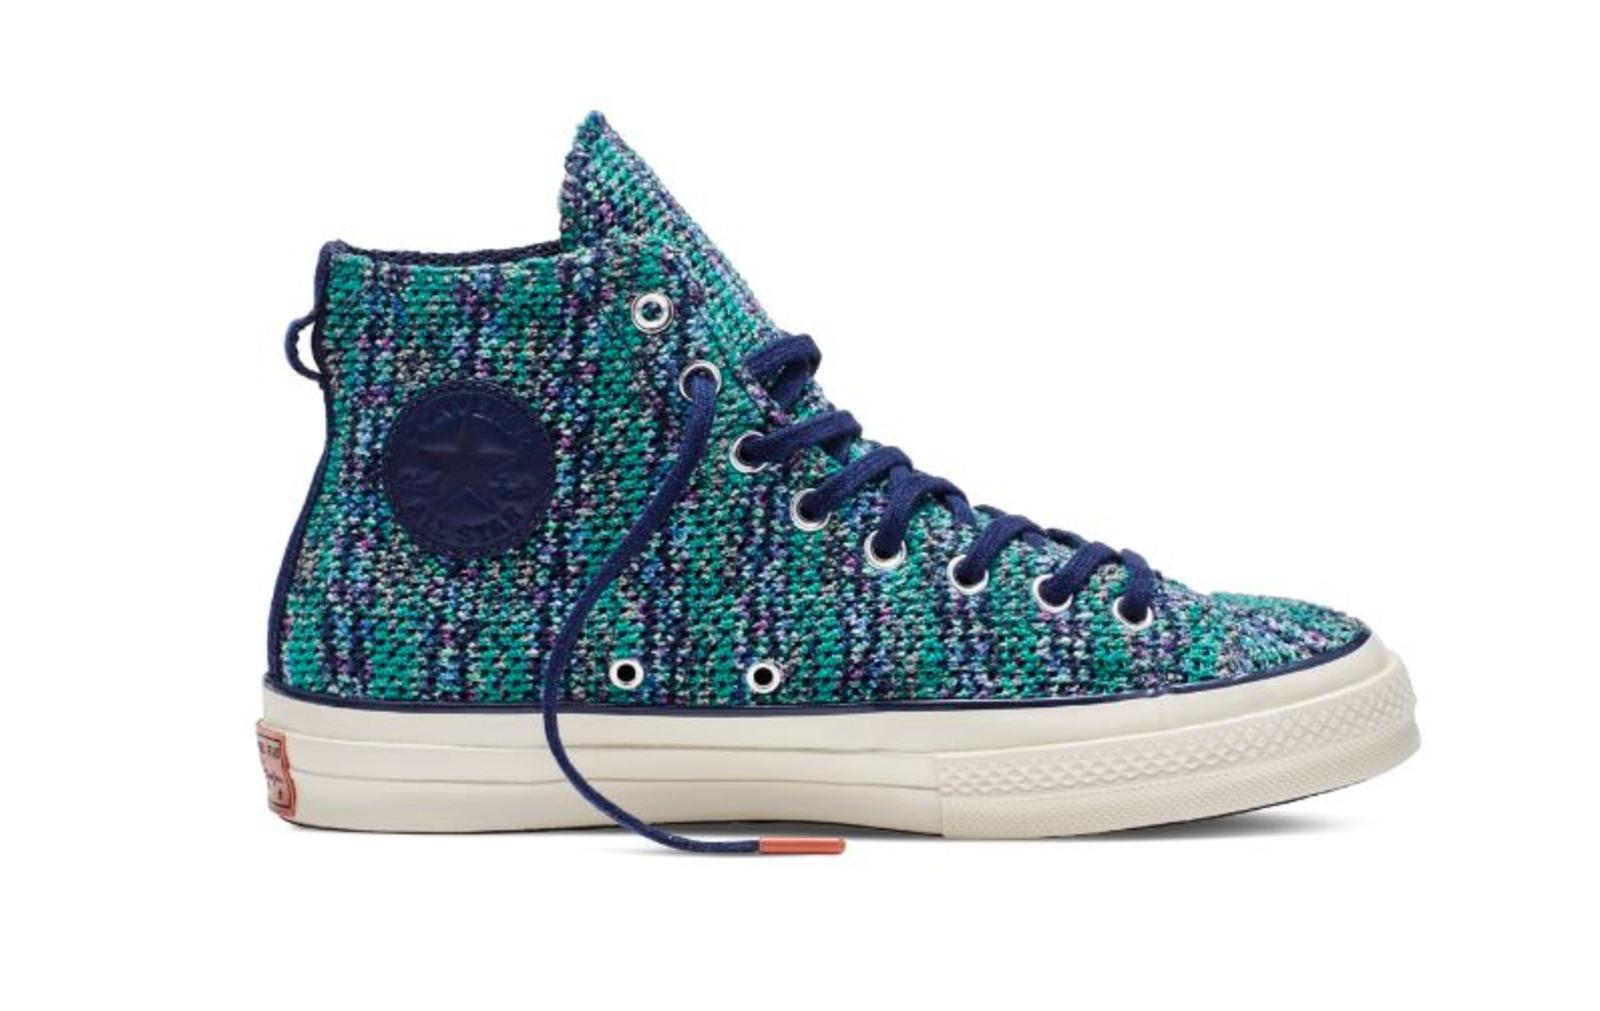 Chuck Taylor All Star Basketball Shoes